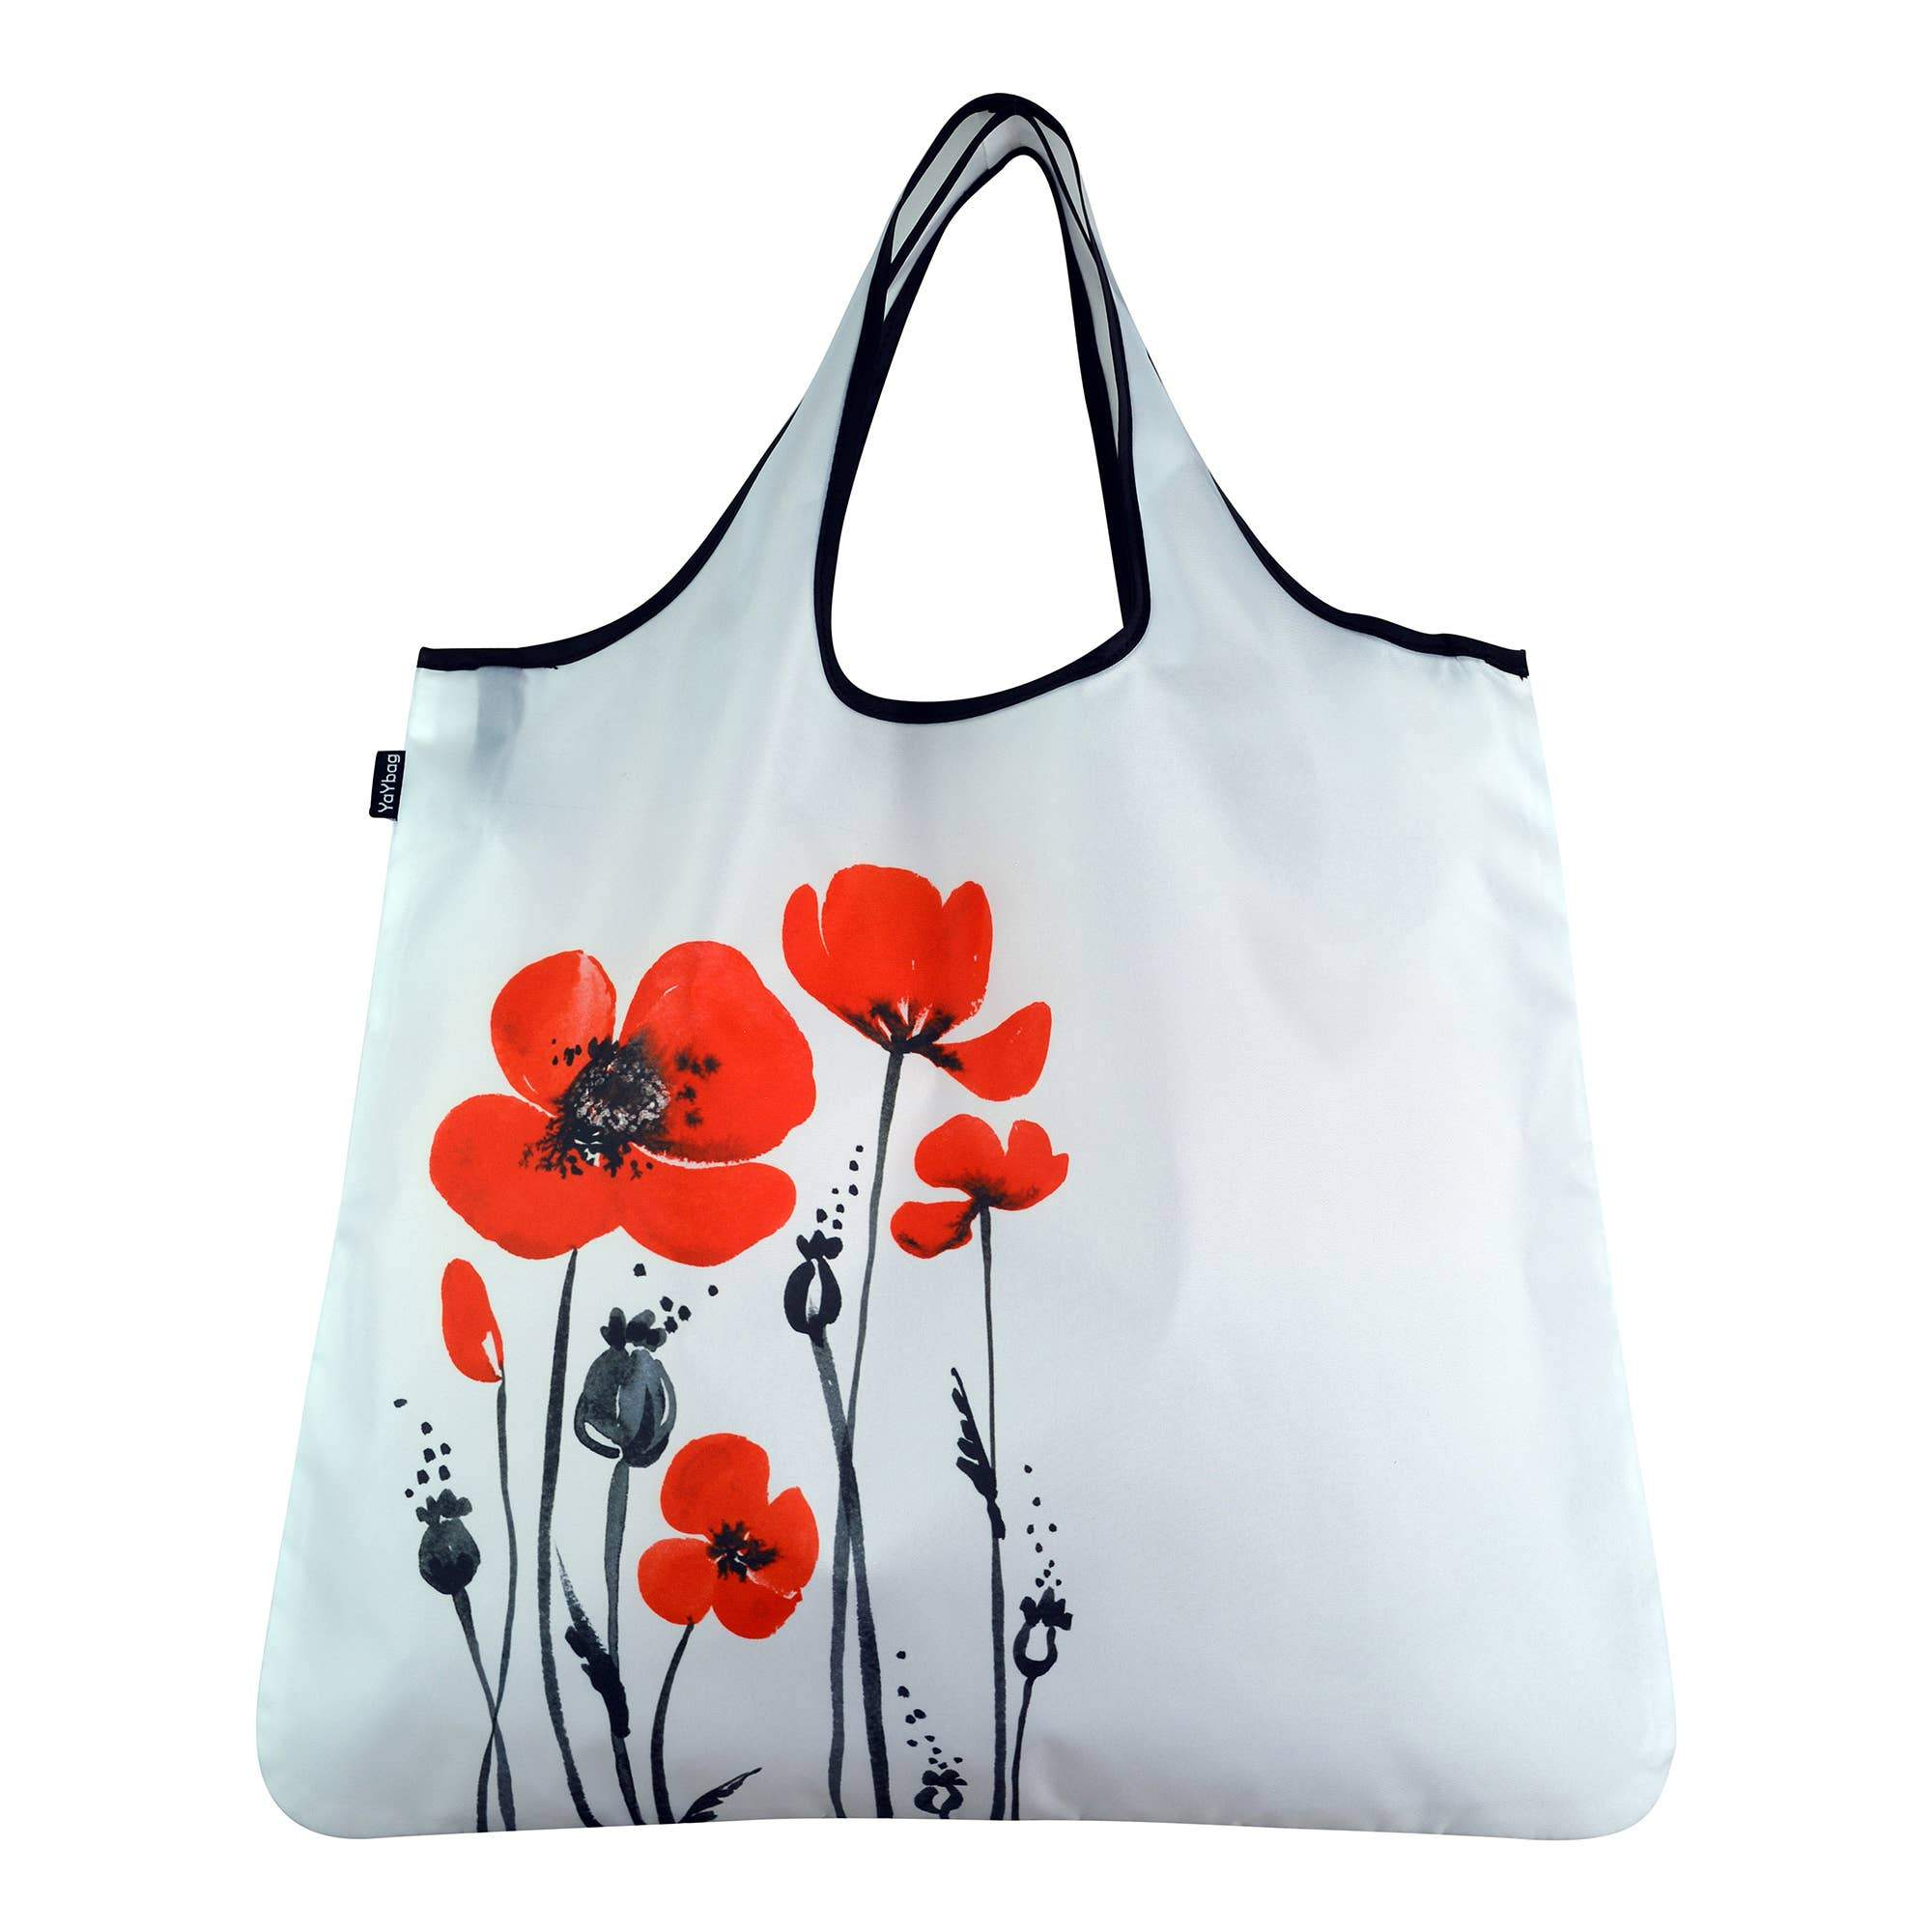 Buy YAY NOVELTY - YaYbag ORIGINAL - Red Poppy from Walking Pants Curiosities, the Most un-General Gift Store in Downtown Memphis, Tennessee!